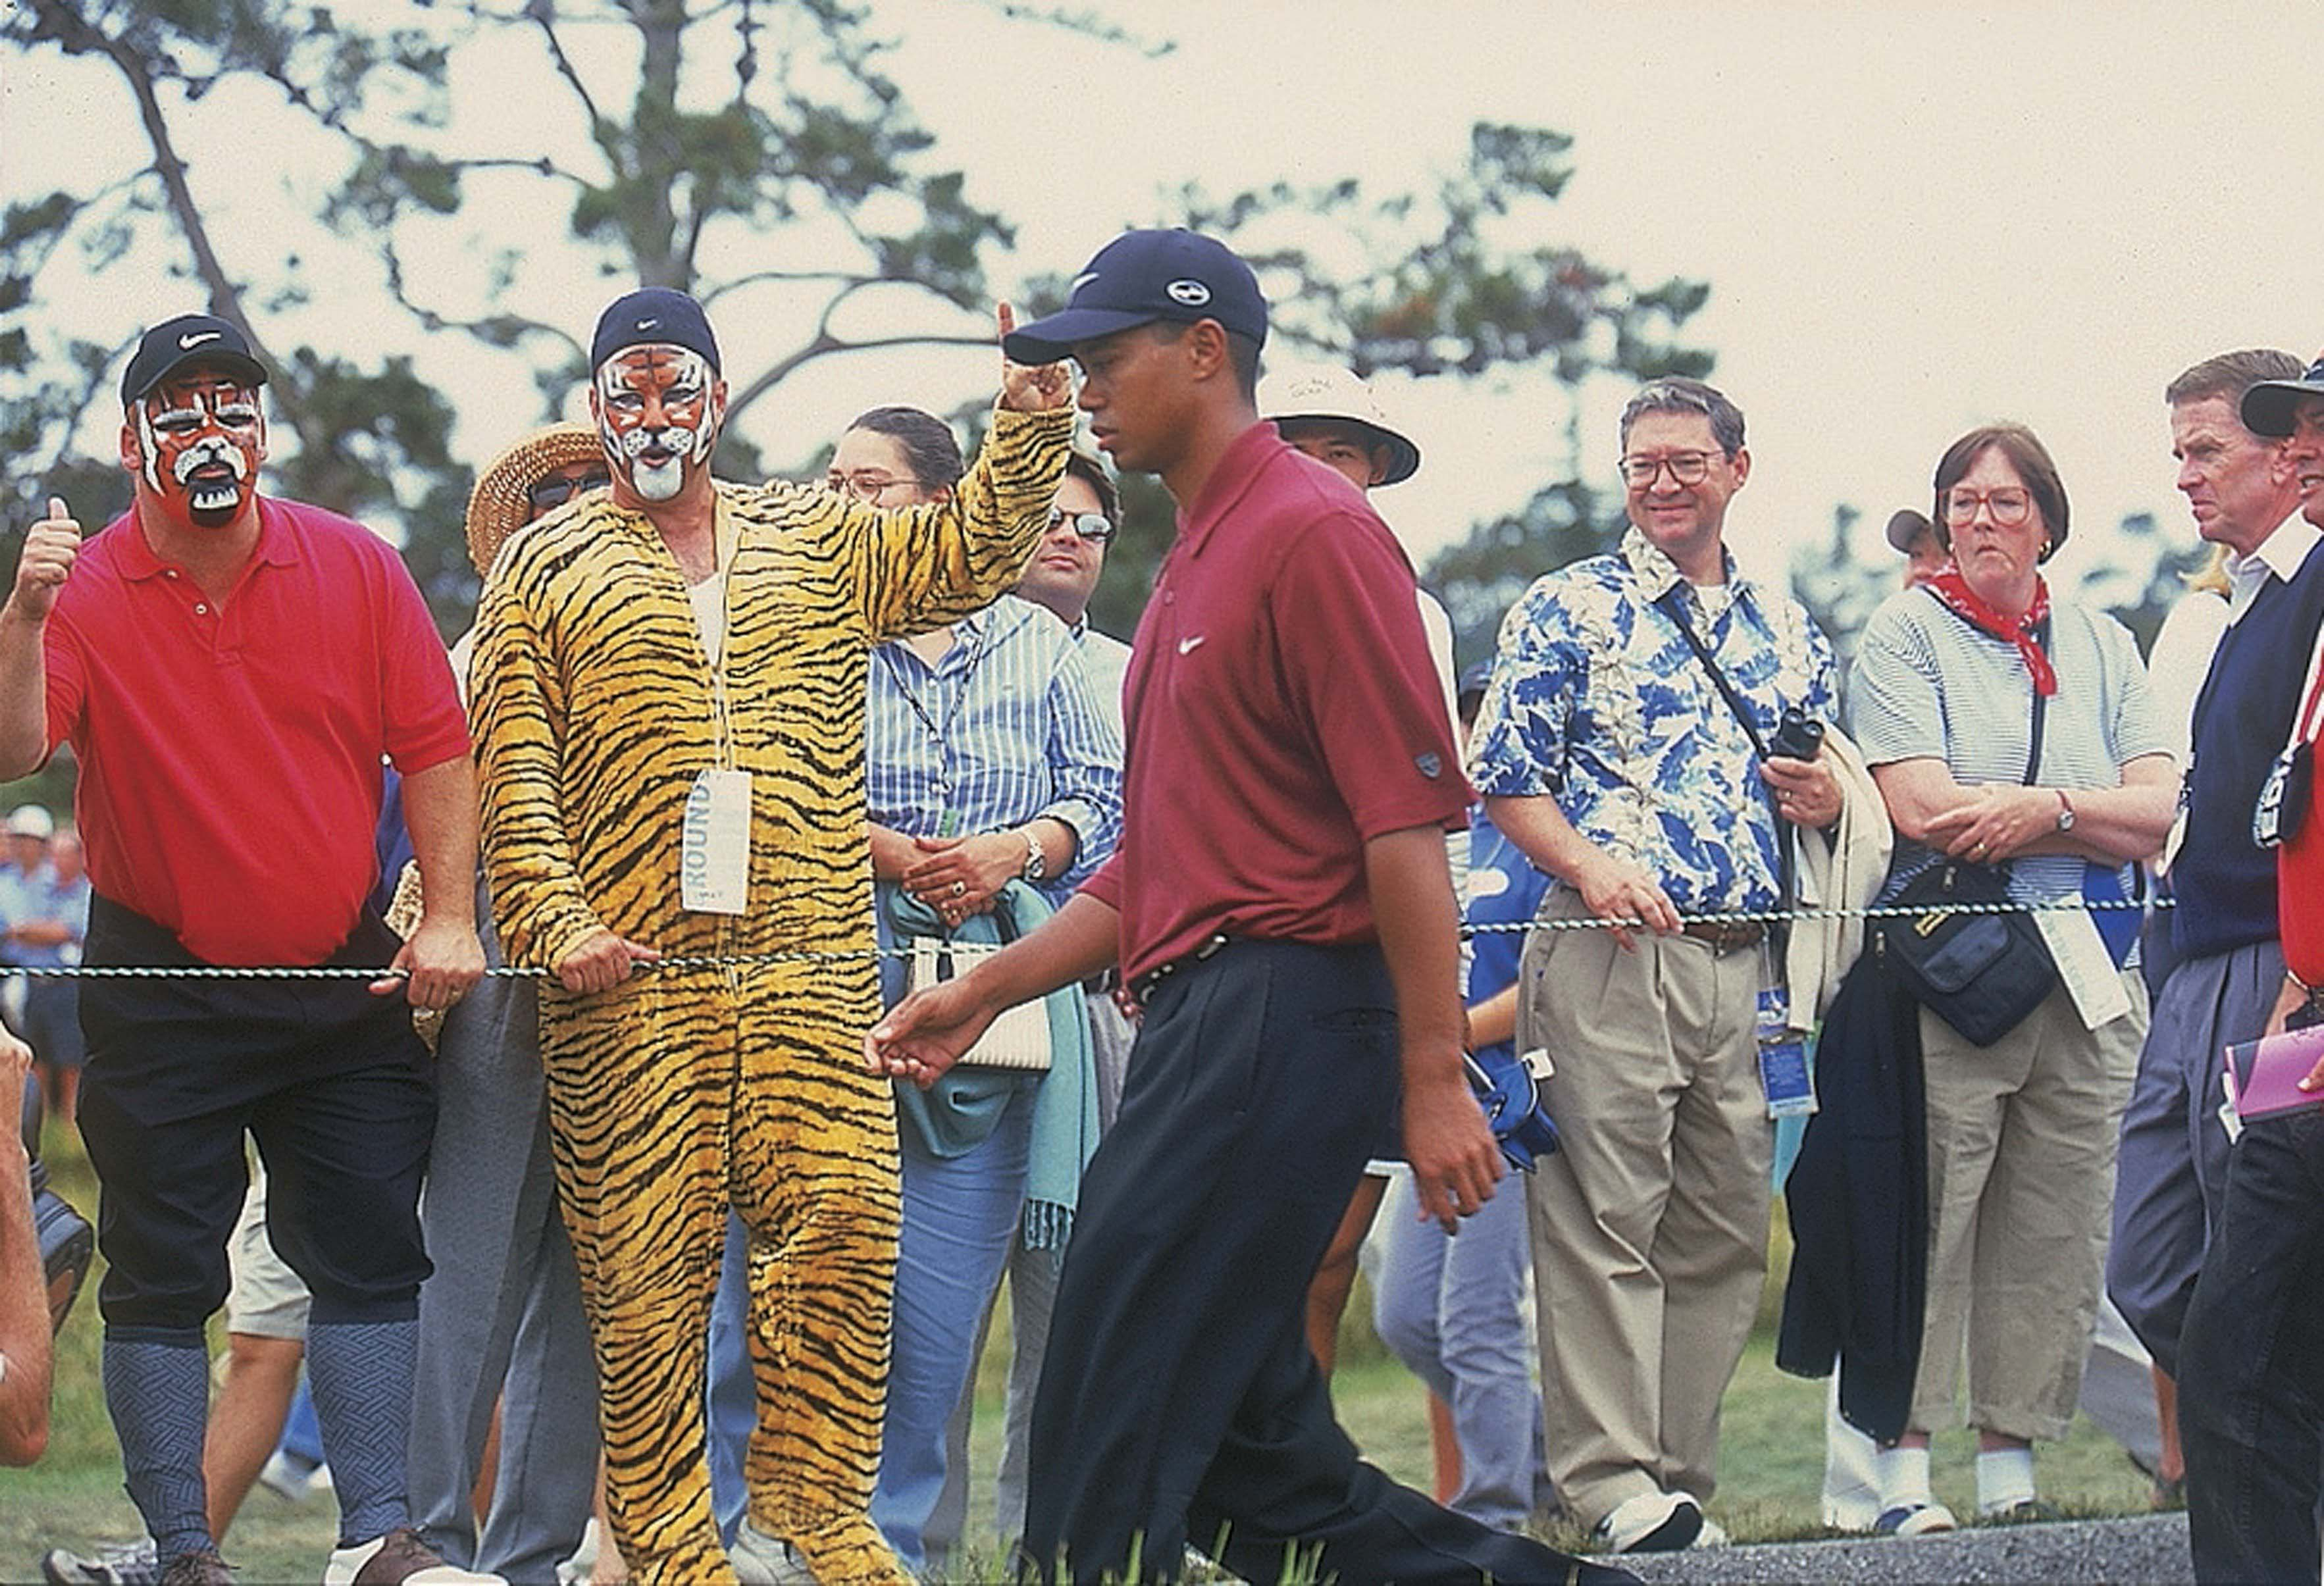 6. 2000: Tiger turns Pebble into rubble